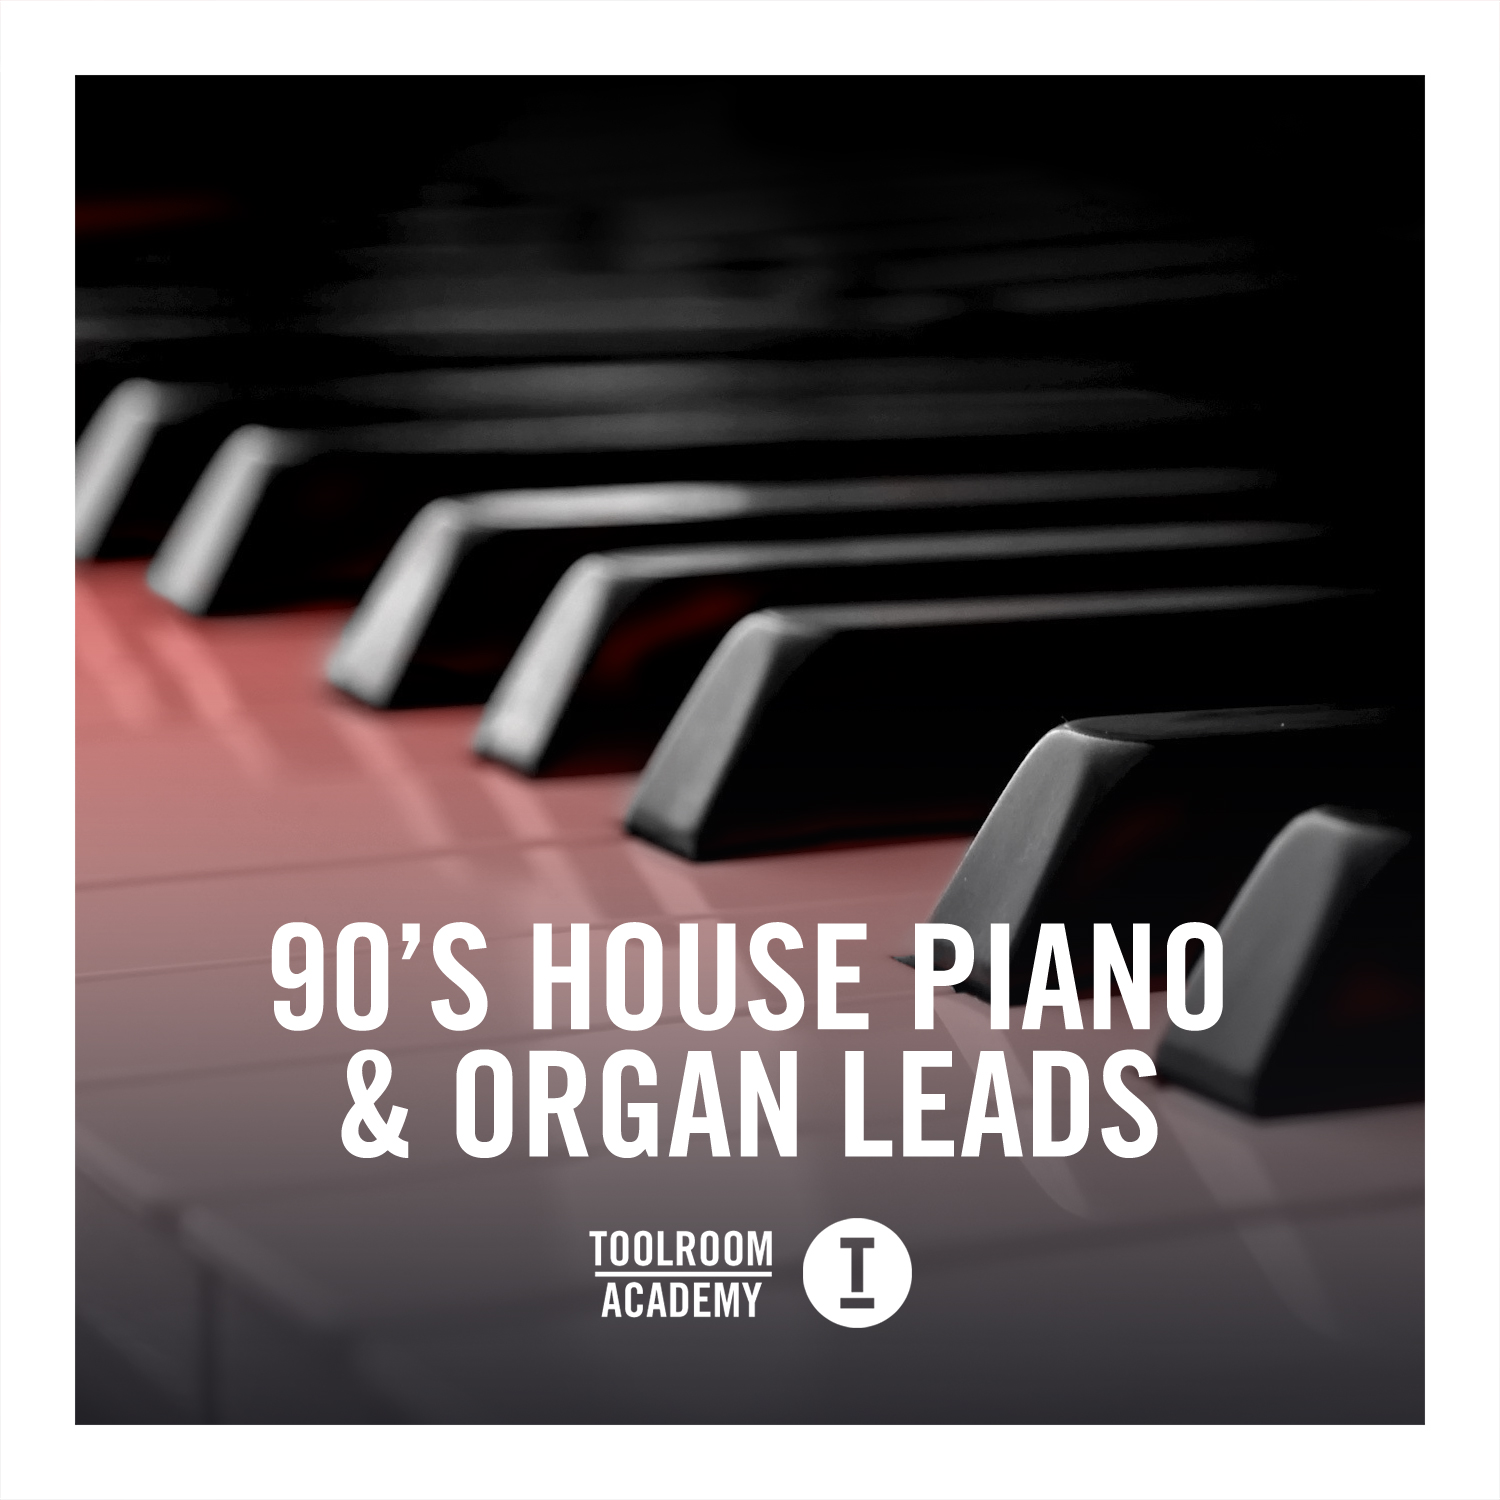 Toolroom Academy 90's House Piano & Organ Leads